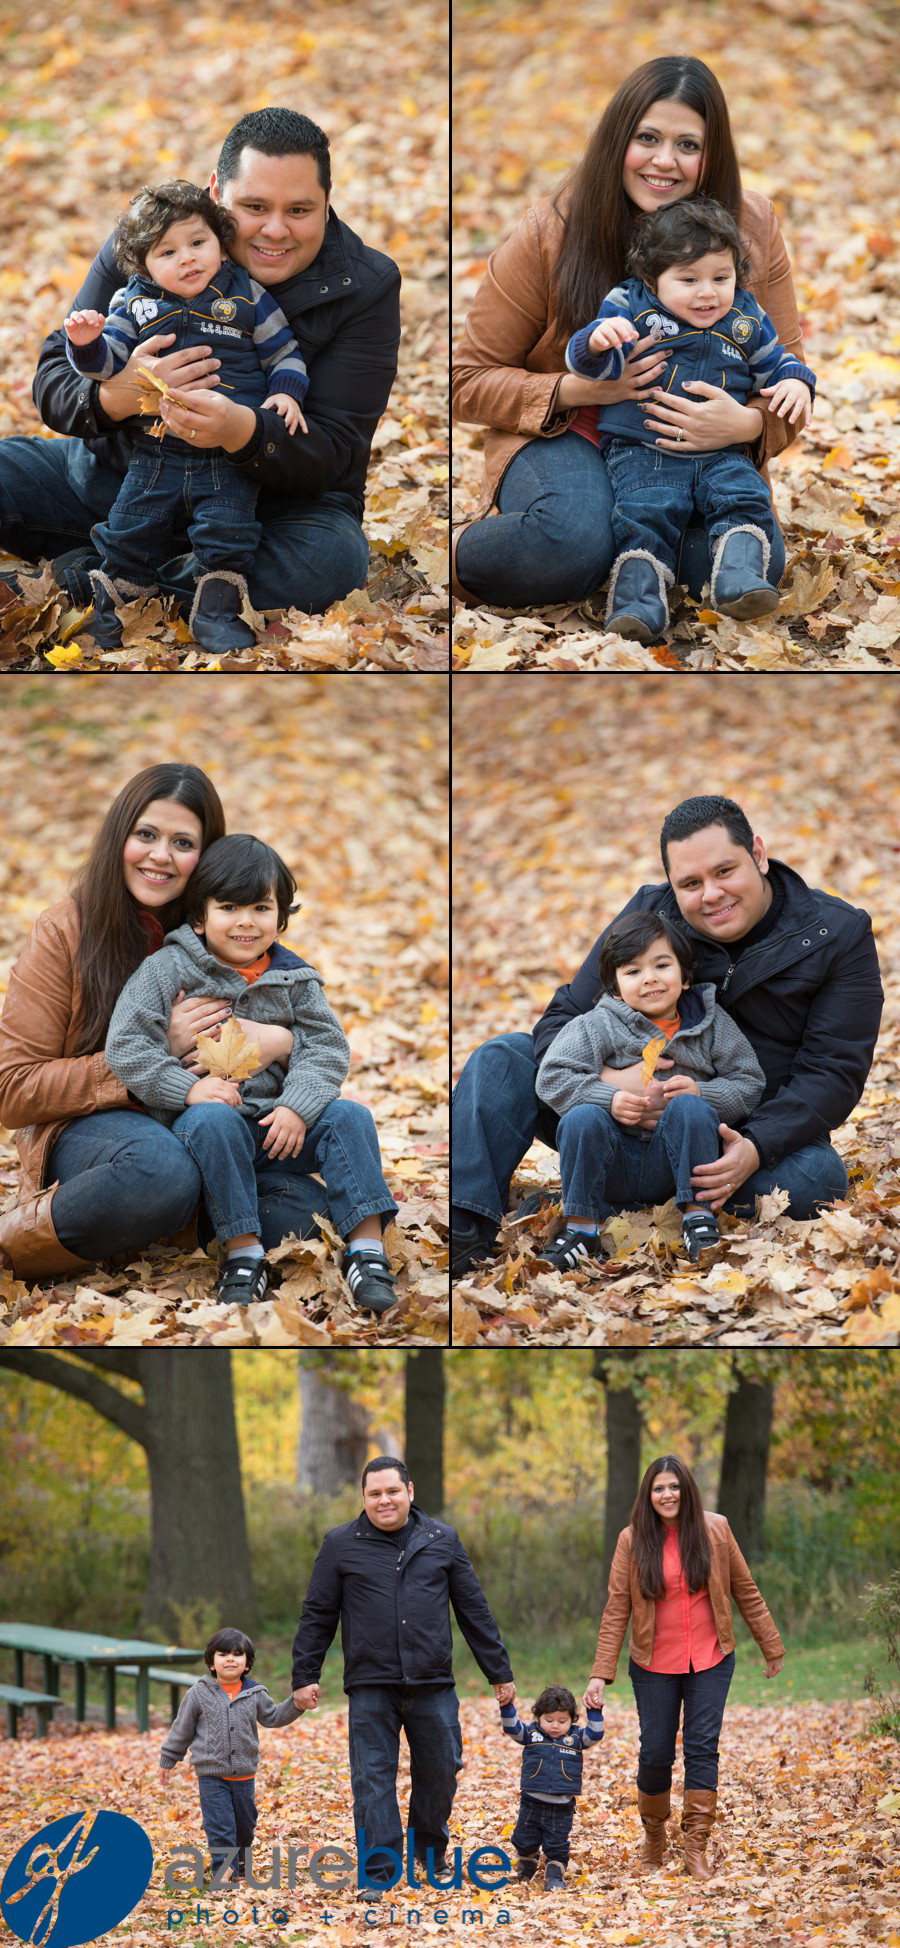 Magy & Jorge Family Shoot